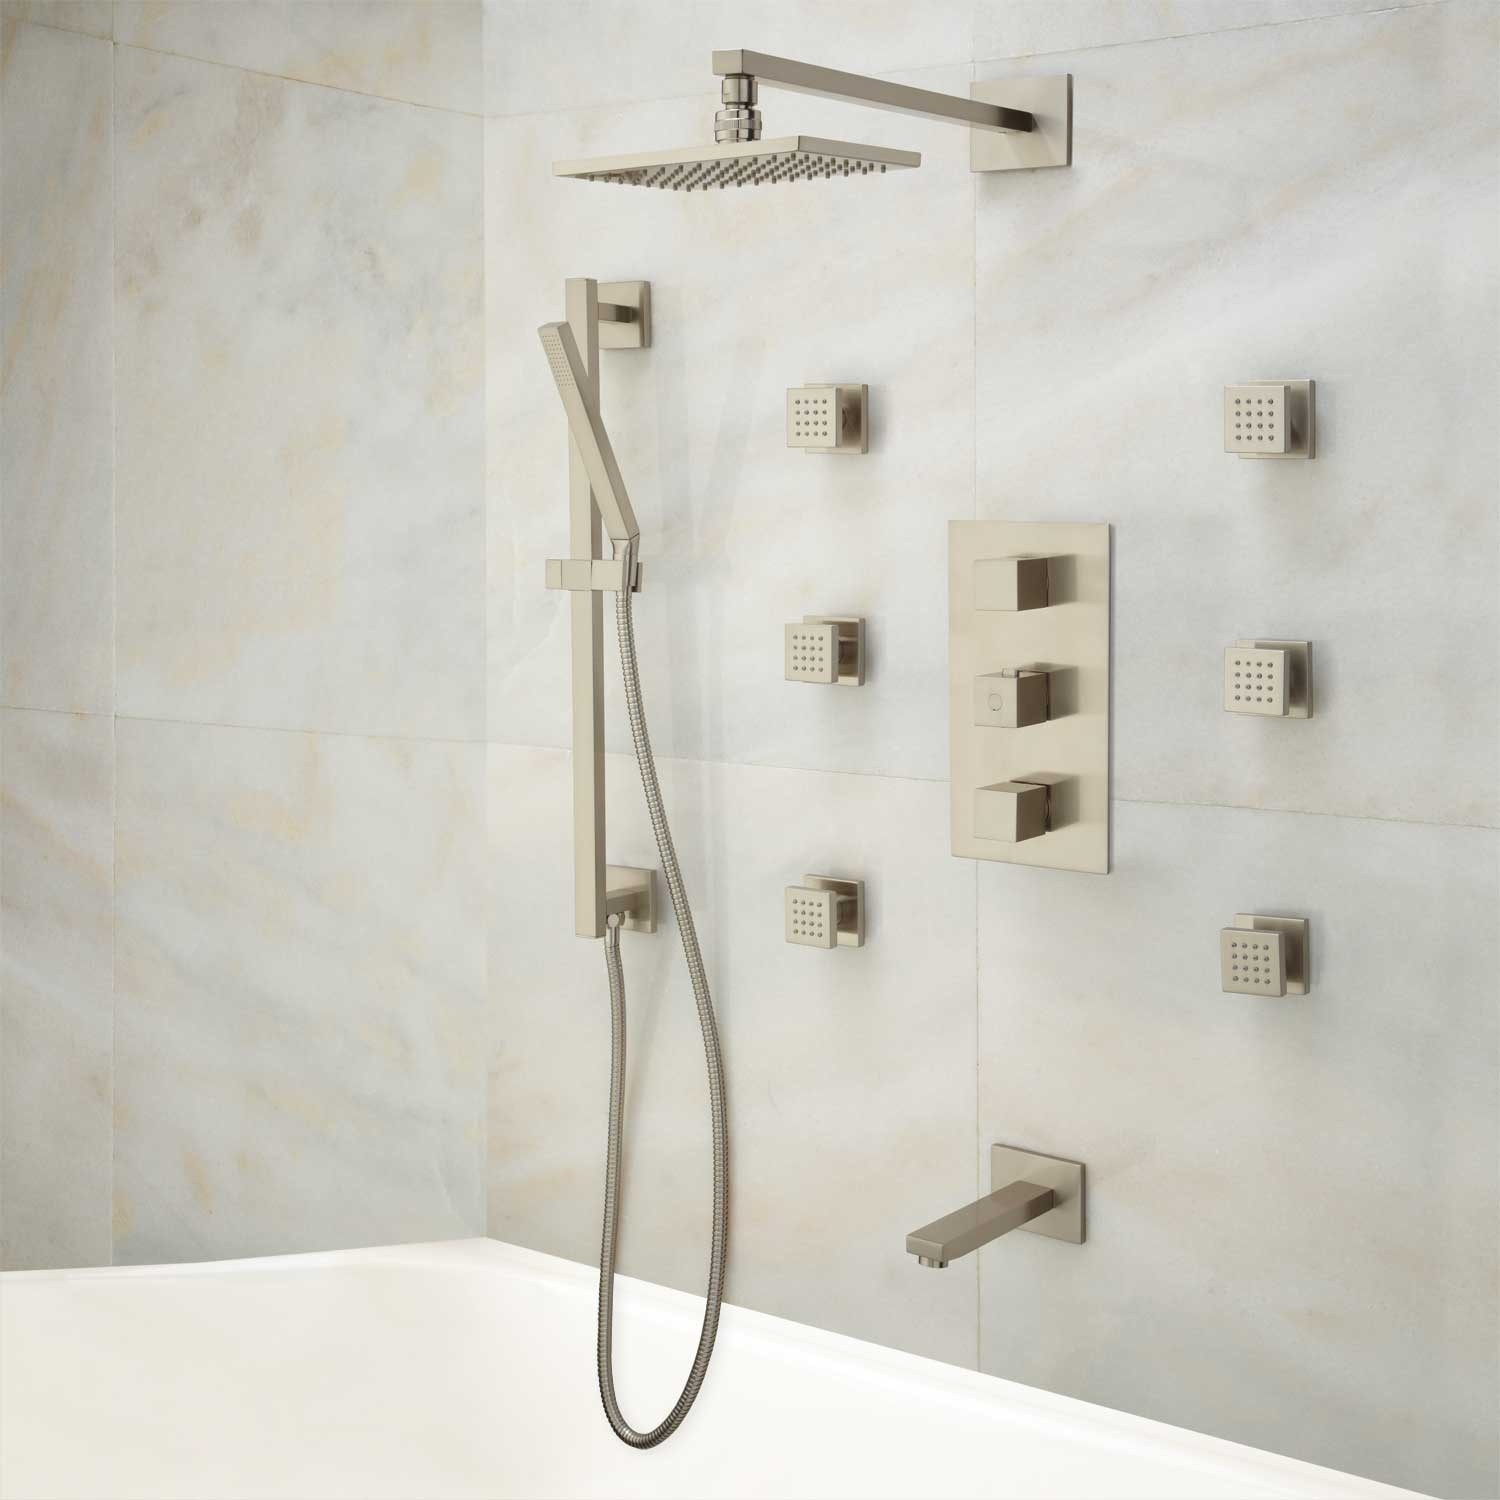 Ideas, best shower faucet systems best shower faucet systems best shower system with body jets showers decoration 1500 x 1500  .